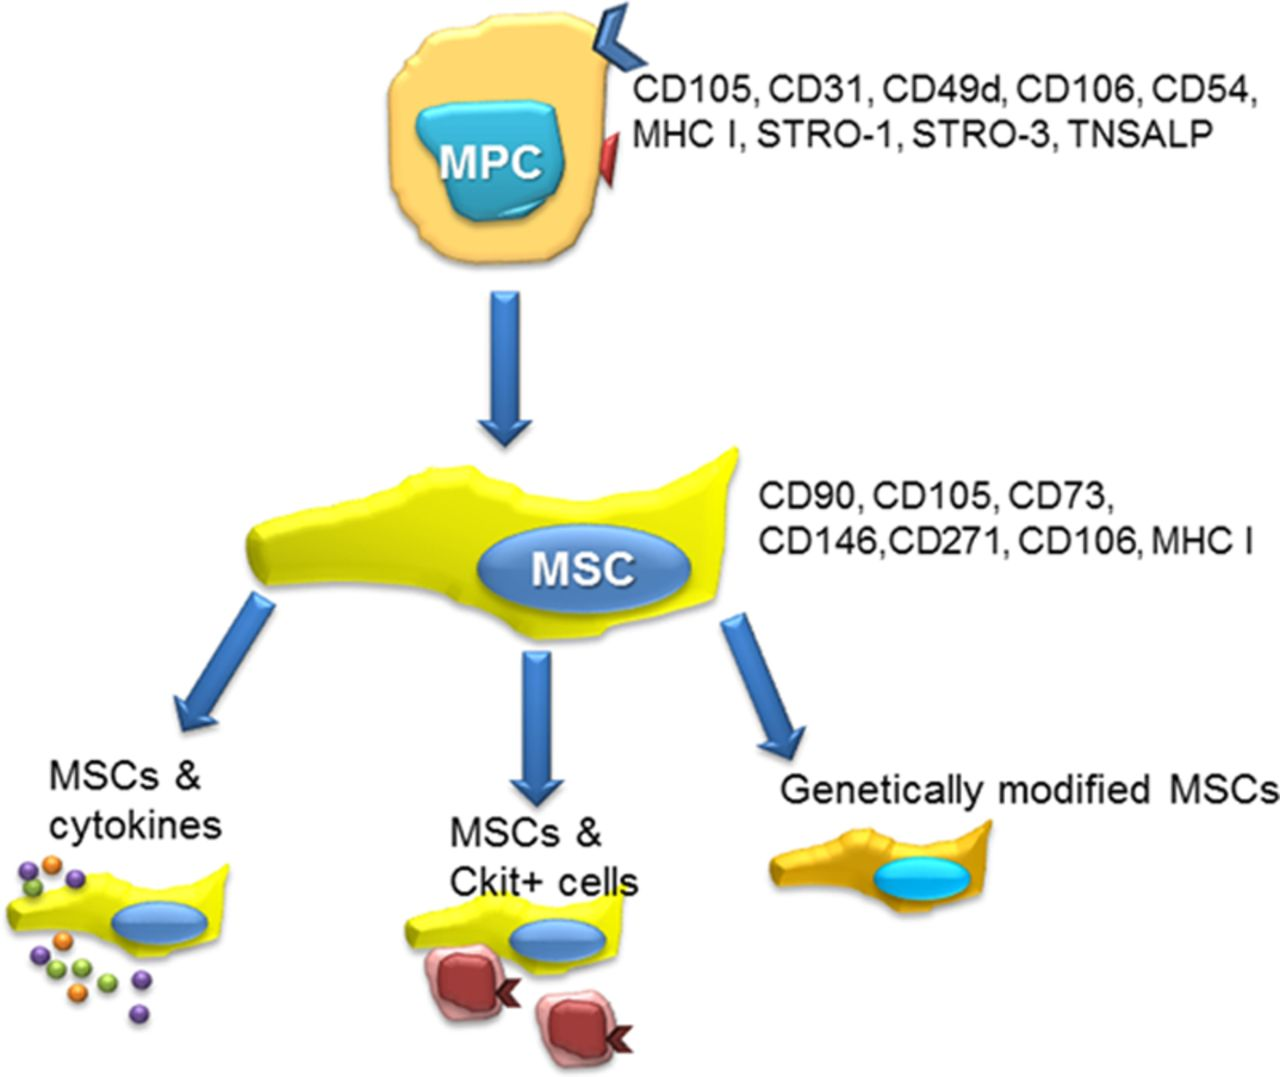 Use of Mesenchymal Stem Cells for Therapy of Cardiac Disease